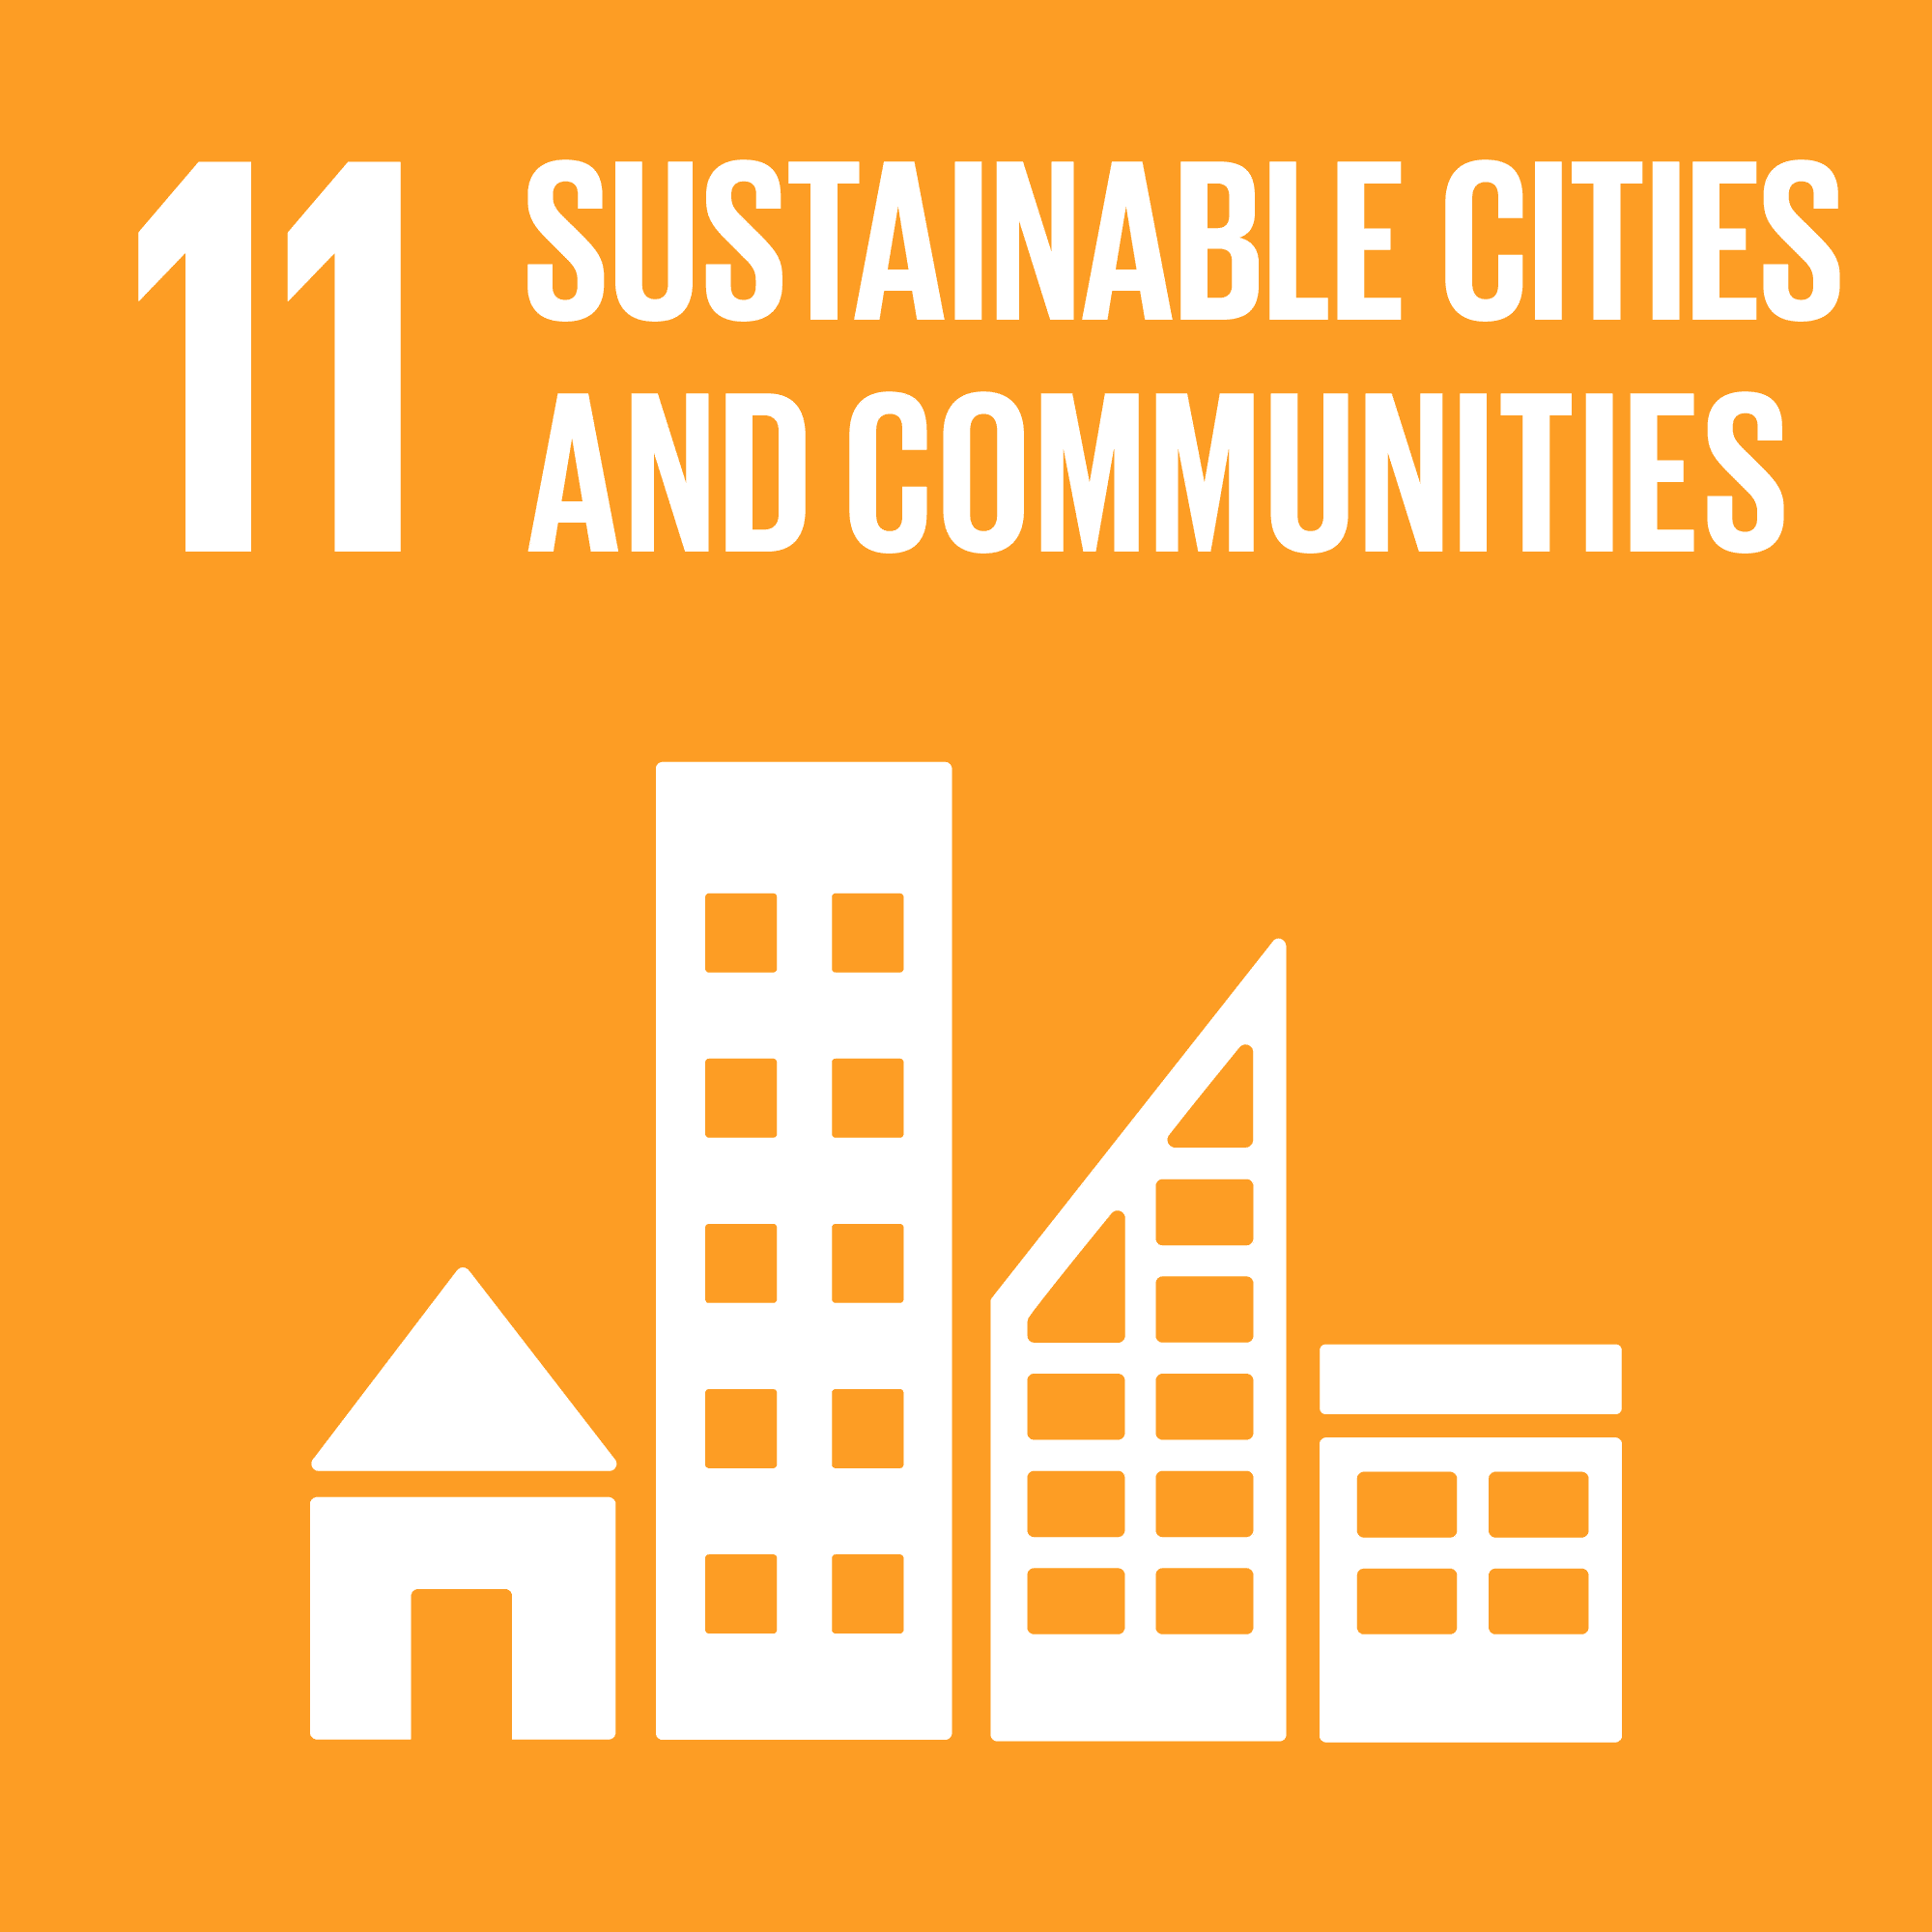 TheGlobalGoals_Icons_Color_Goal_11